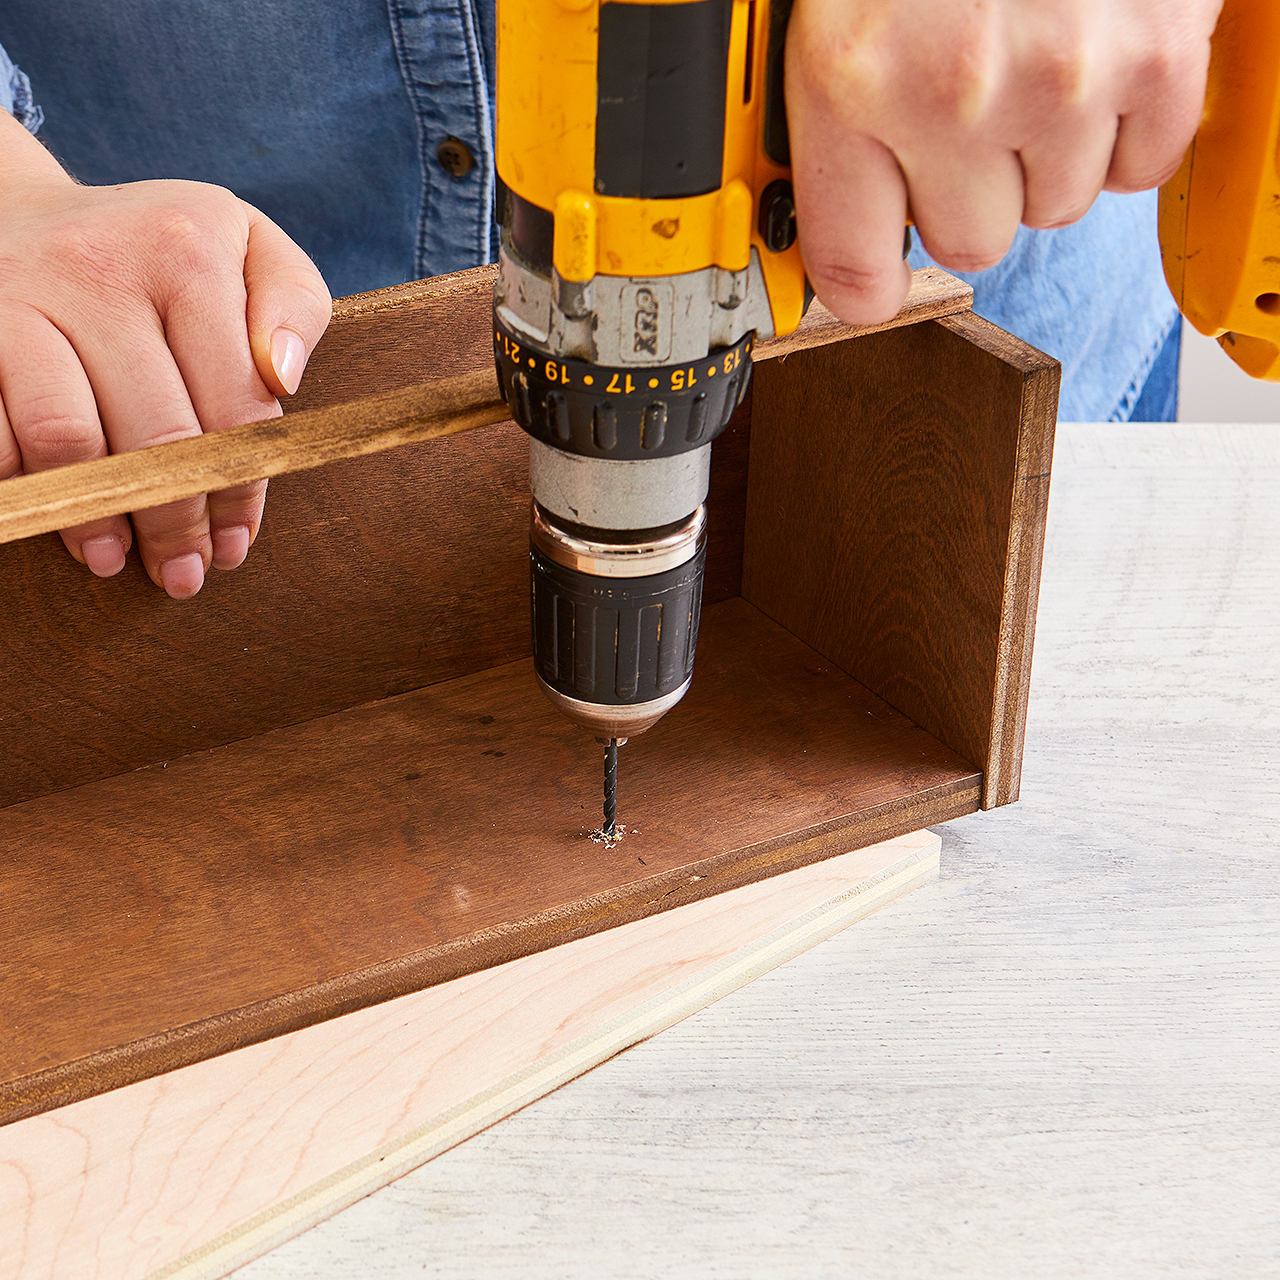 create pilot holes in shelf with drill